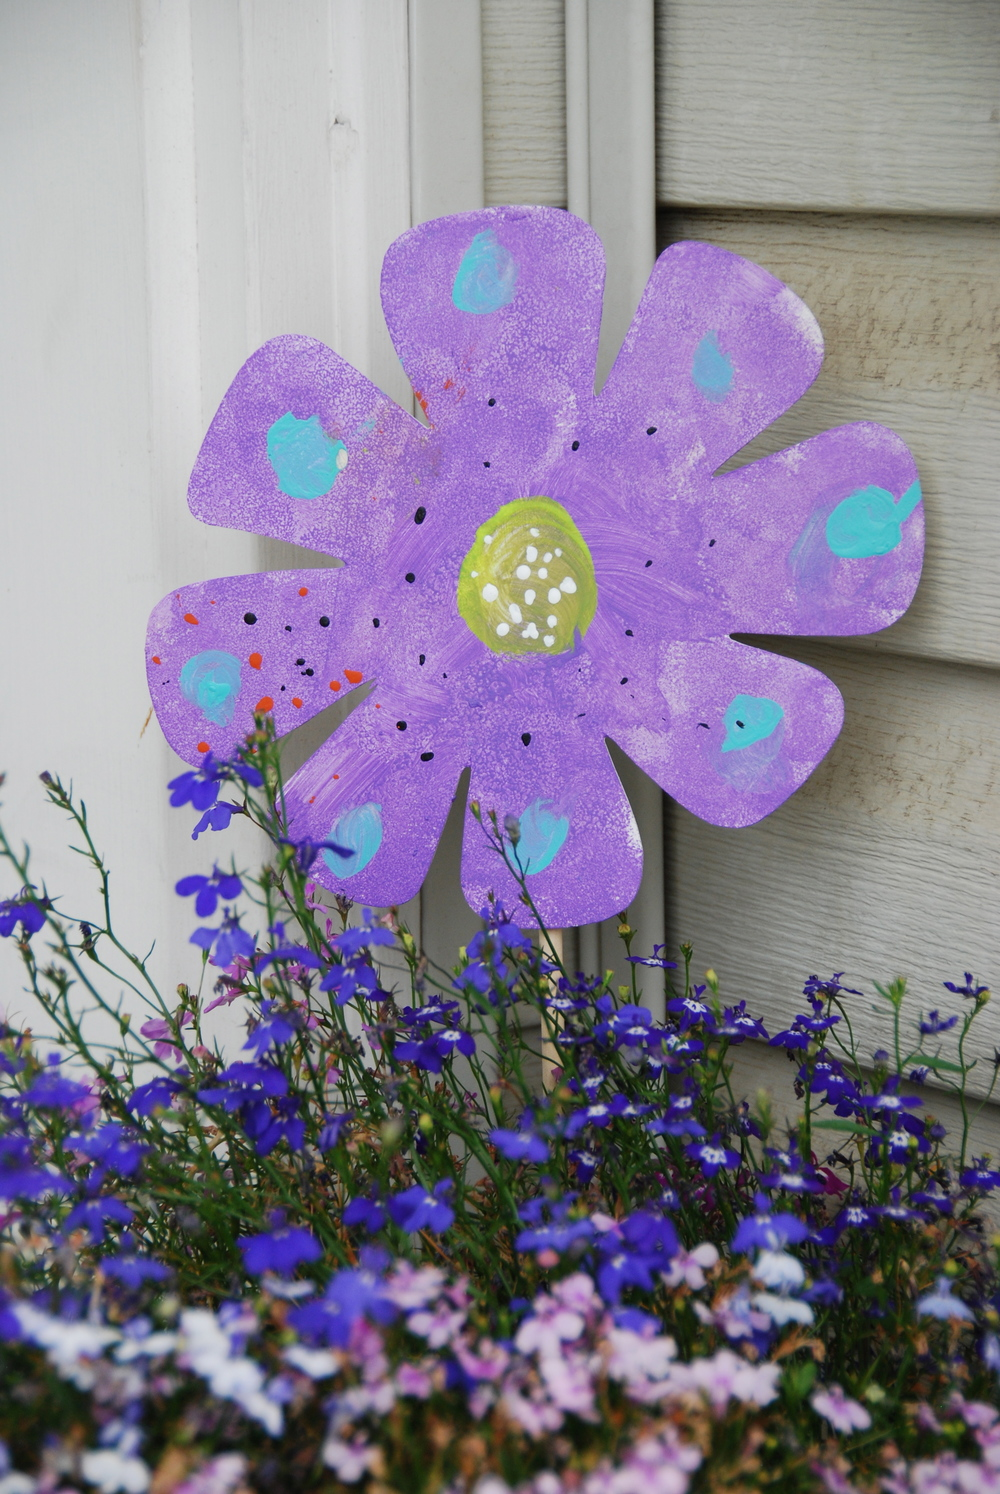 These painted flowers also look pretty in your potted plants!